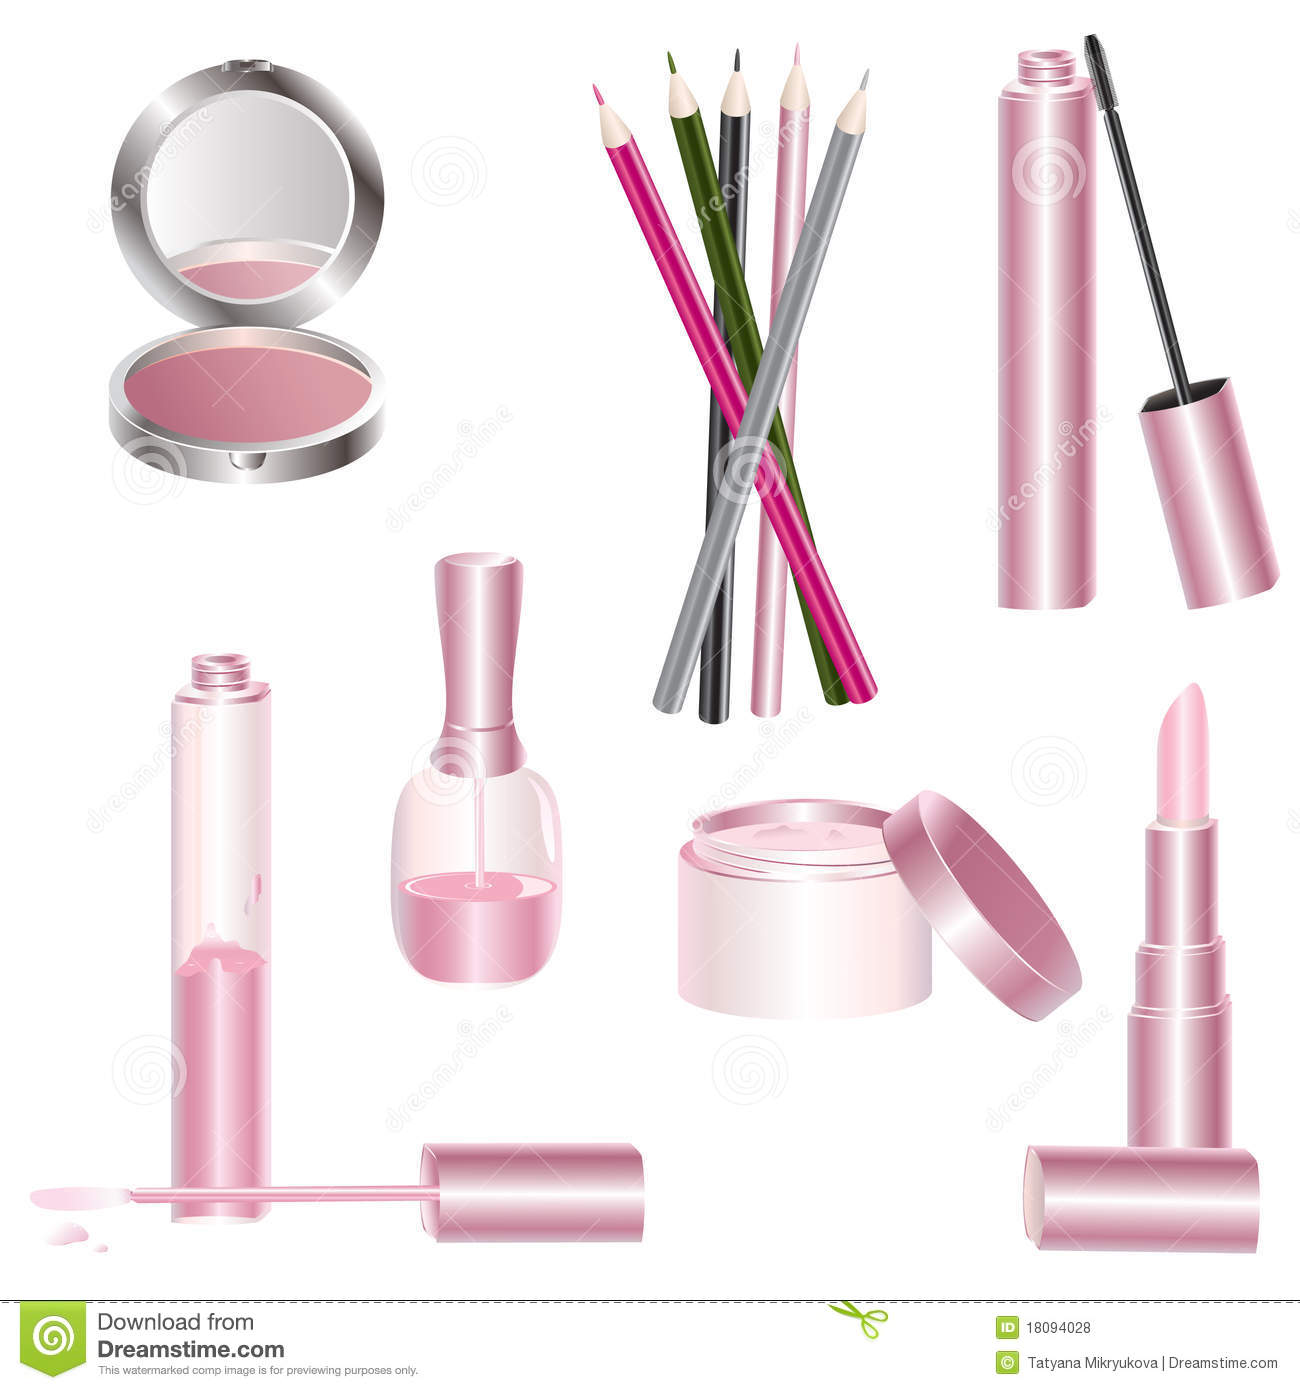 Image Result For Business Plan For Hair Care Productsa